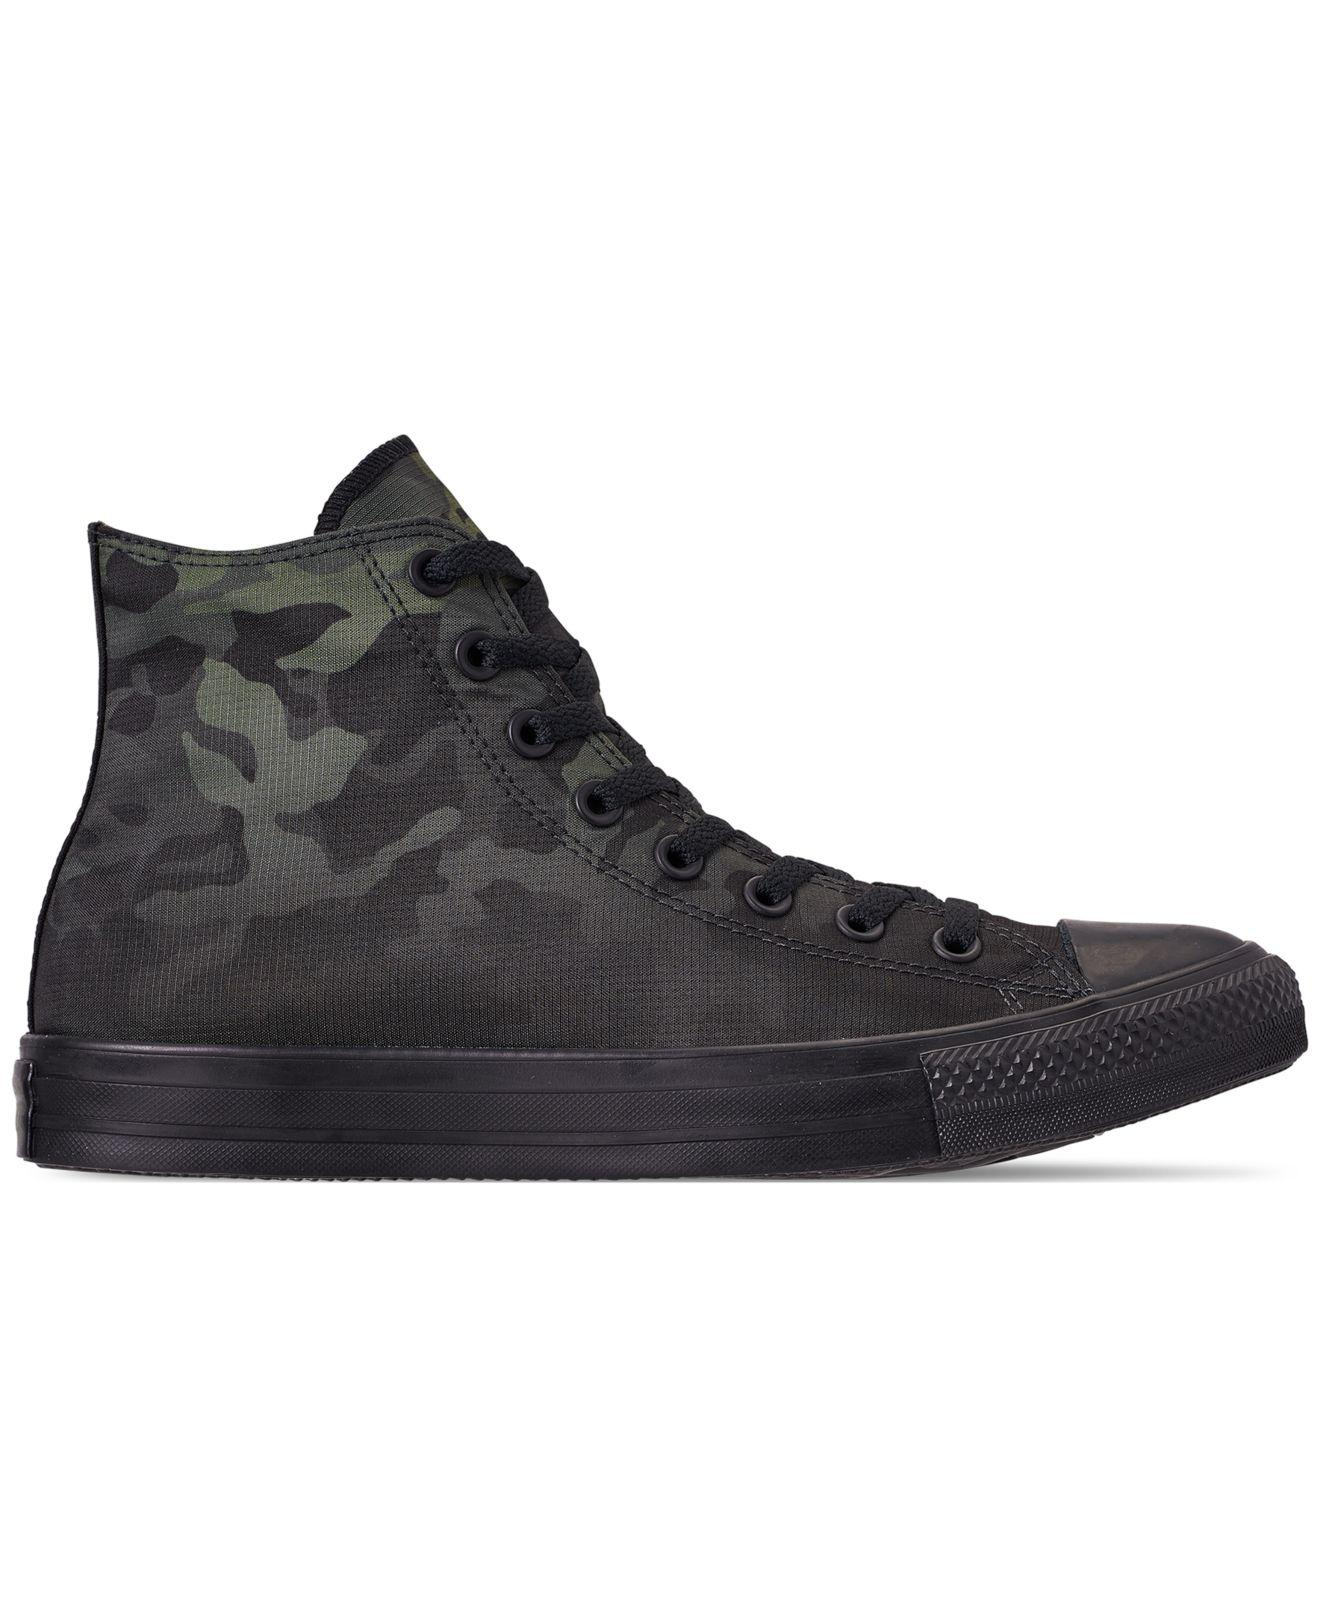 5bd5f70b6589 Lyst - Converse Chuck Taylor All Star Gradient Camo High Top Casual Sneakers  From Finish Line in Black for Men